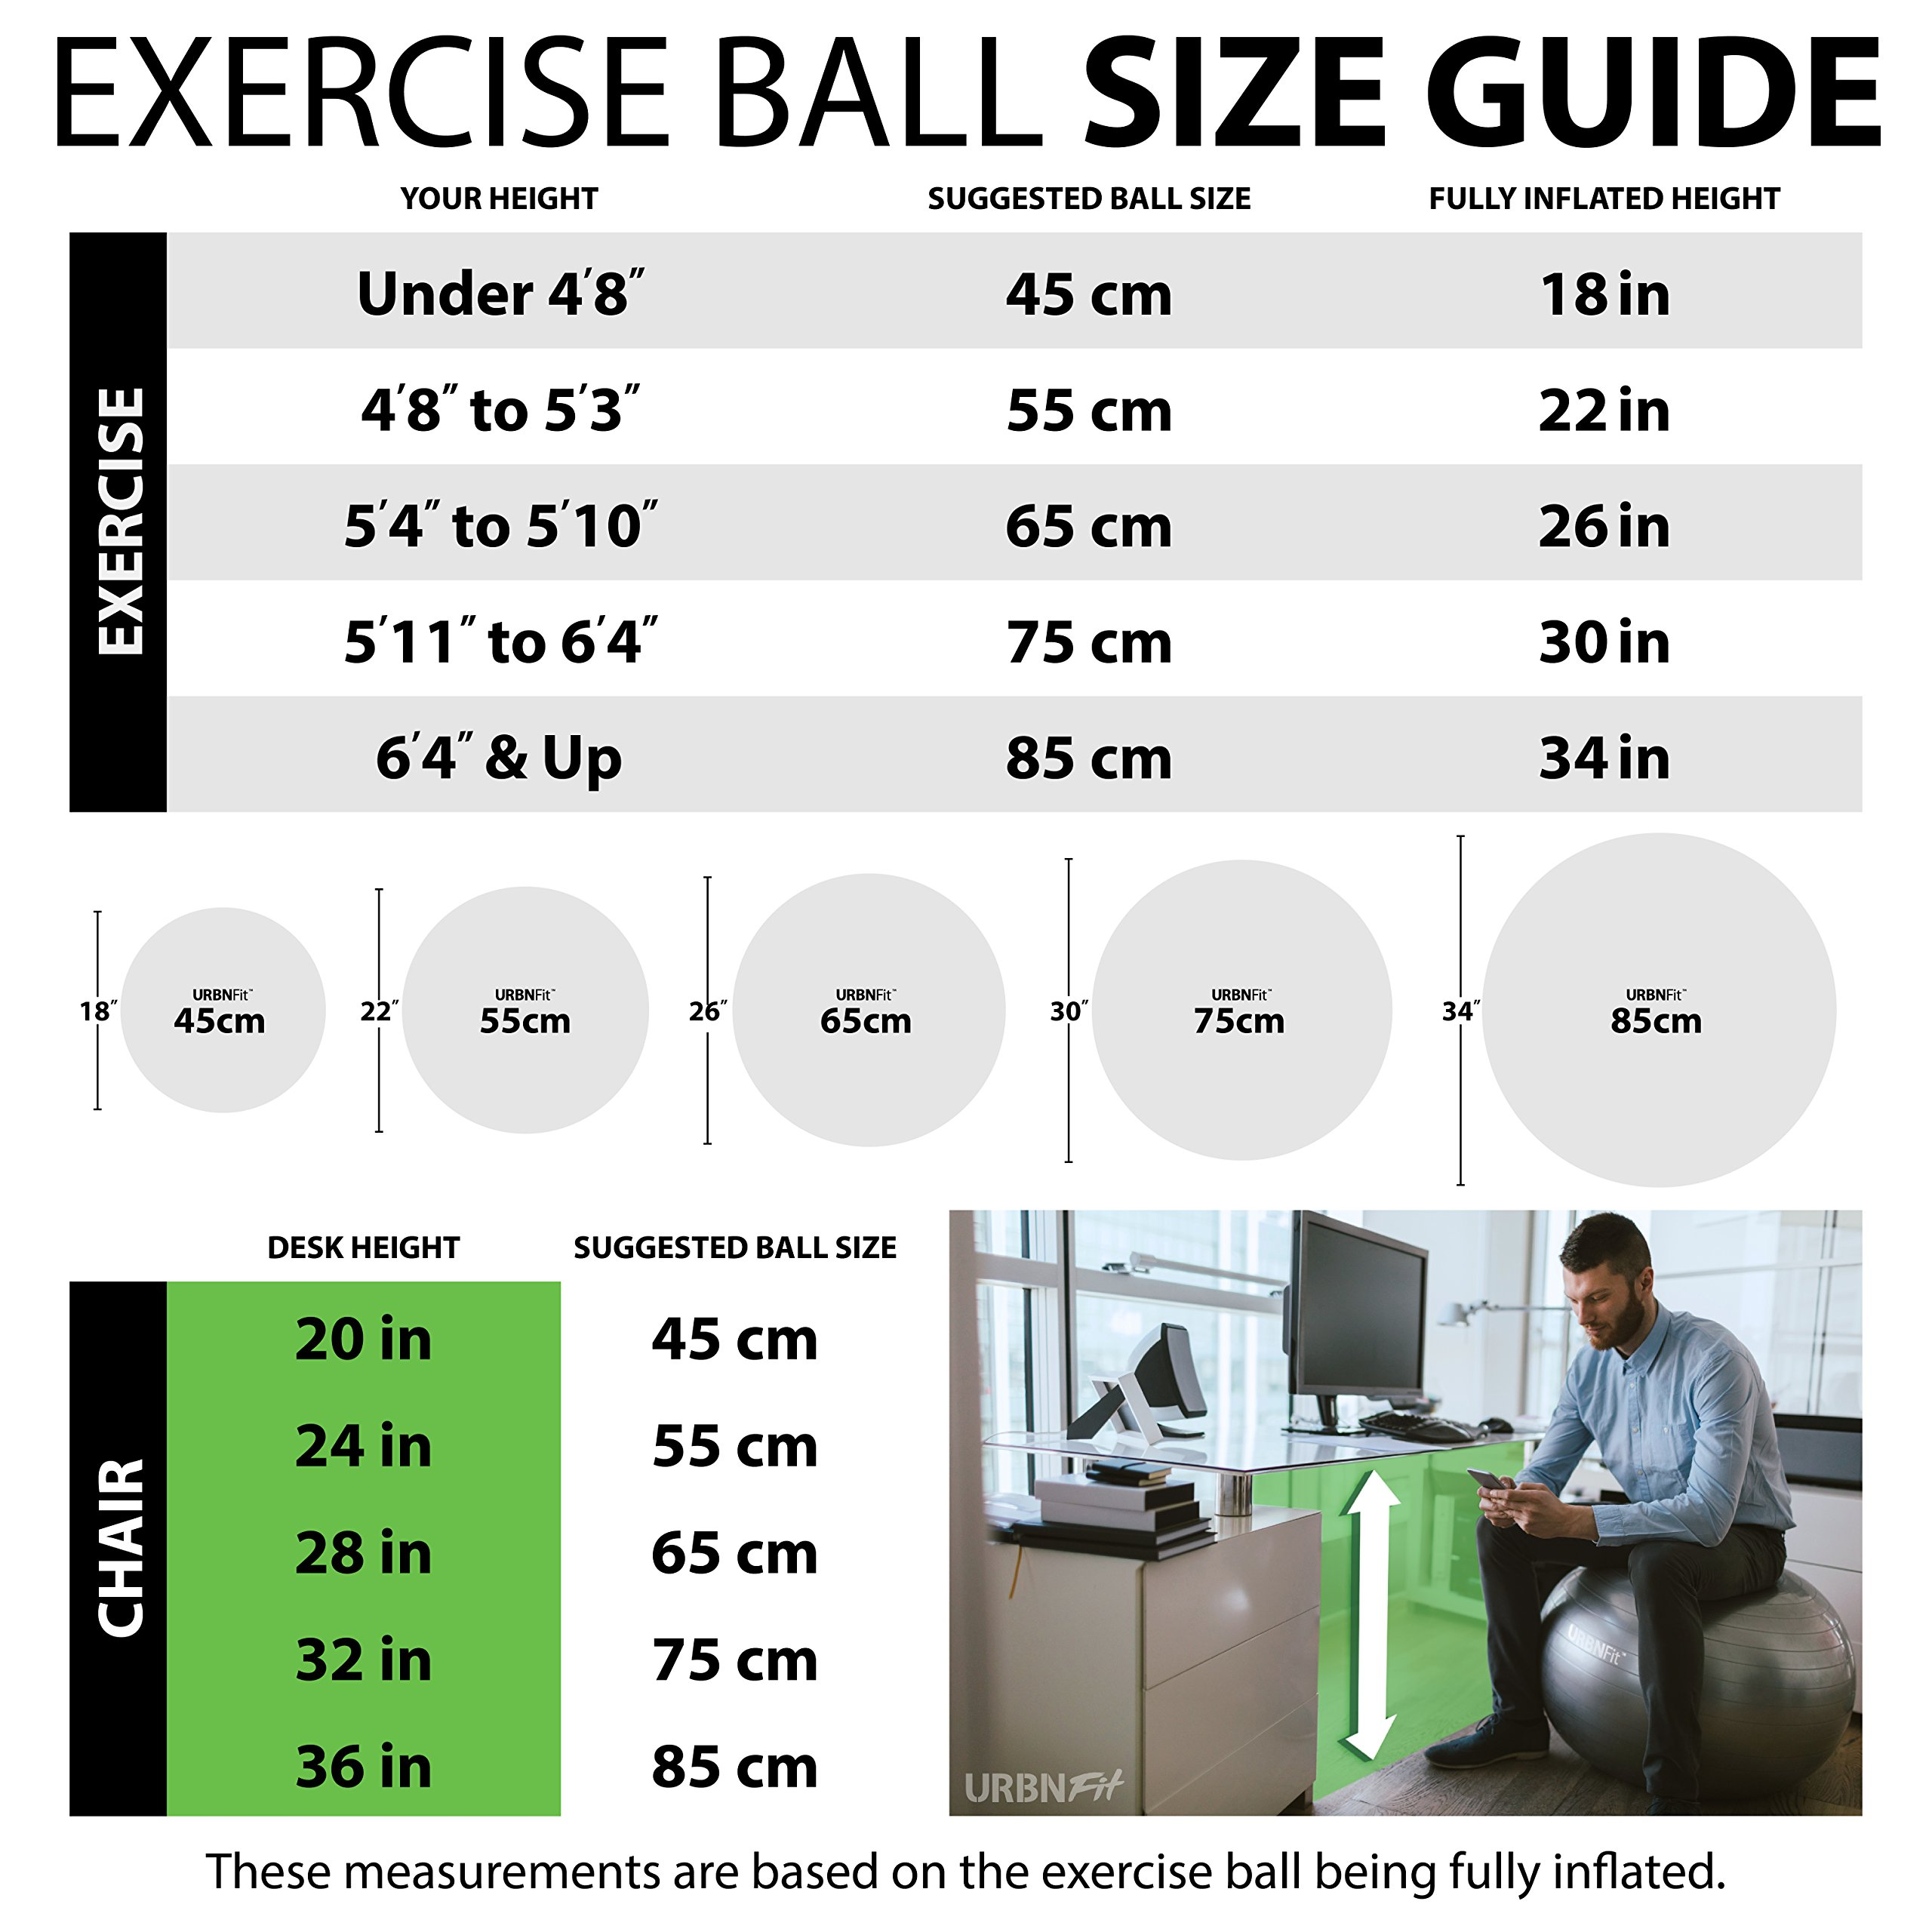 URBNFit Exercise Ball (Multiple Sizes) for Fitness, Stability, Balance & Yoga - Workout Guide & Quick Pump Included - Anit Burst Professional Quality Design (Green, 55CM) by URBNFit (Image #3)